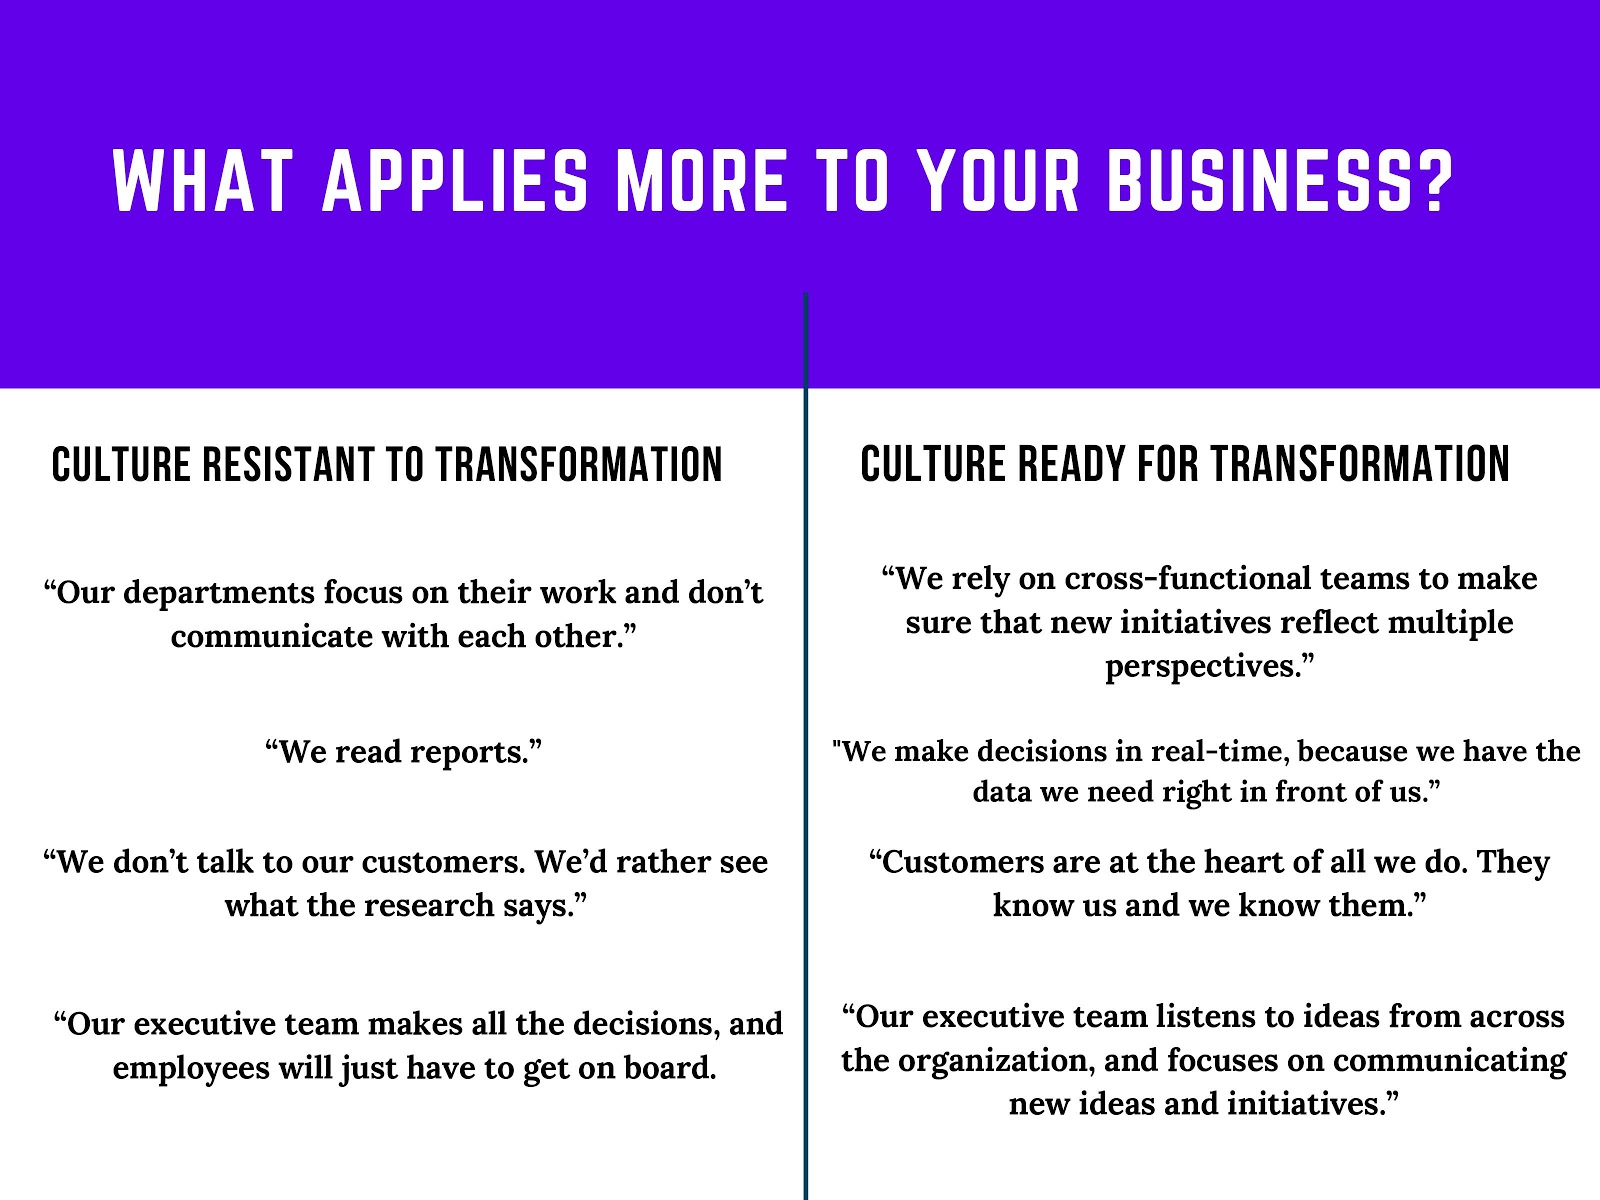 What applies more to your business?